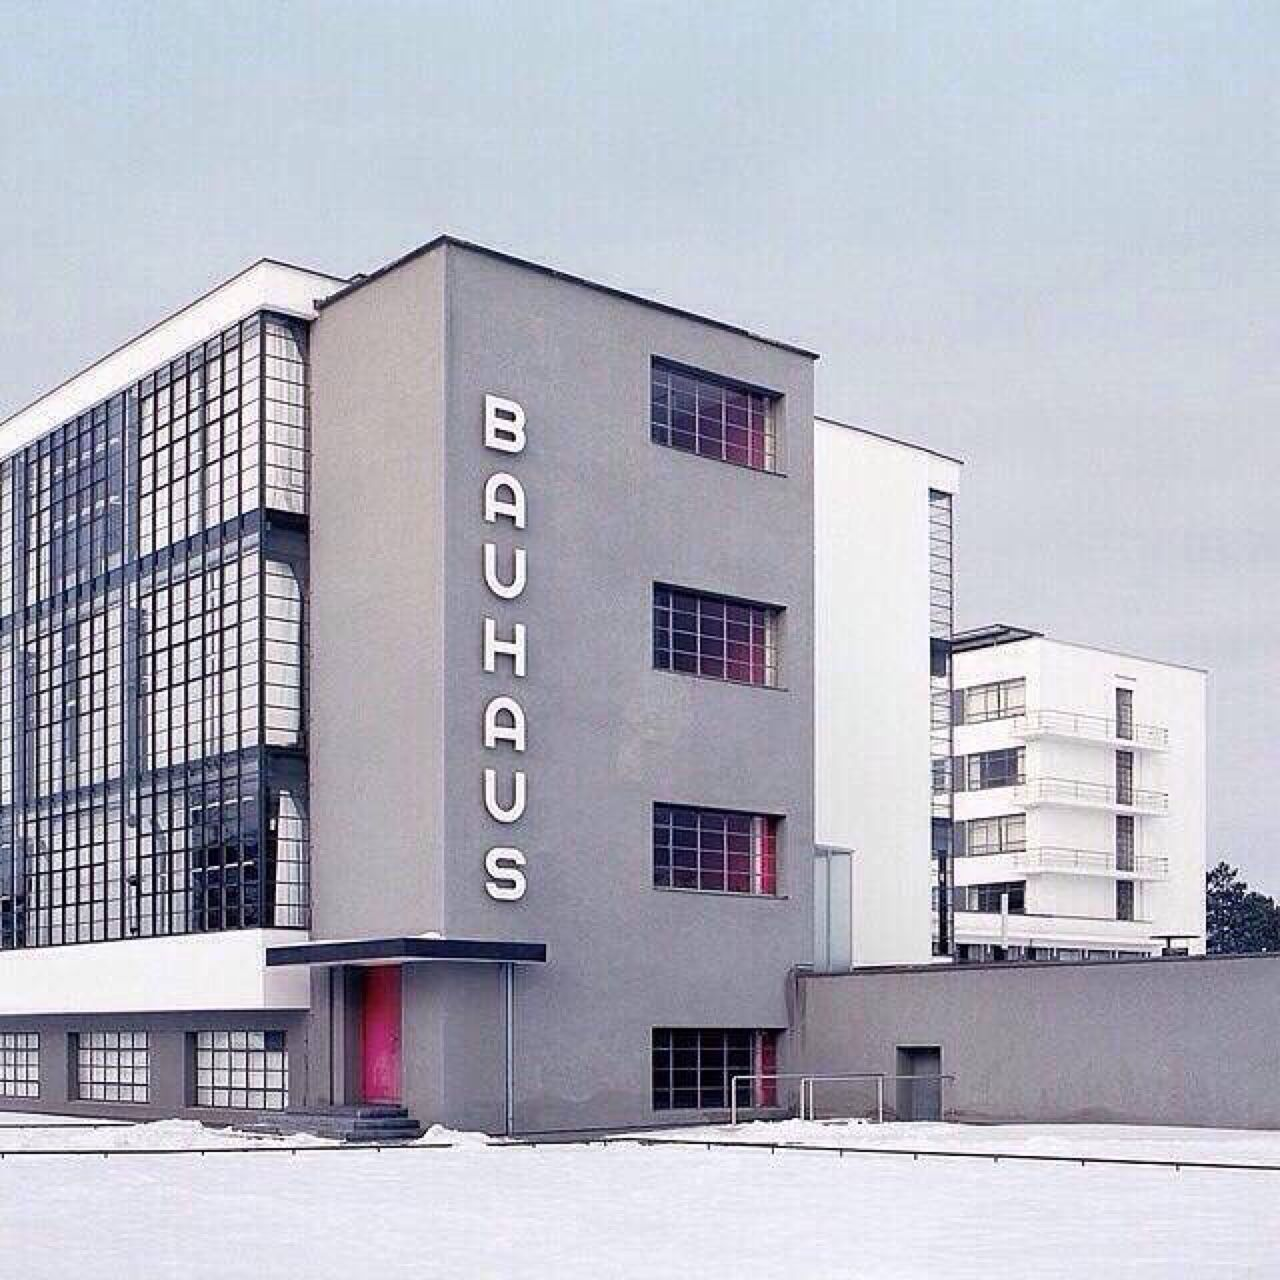 Pin by Danie'O on Architecture Bauhaus architecture